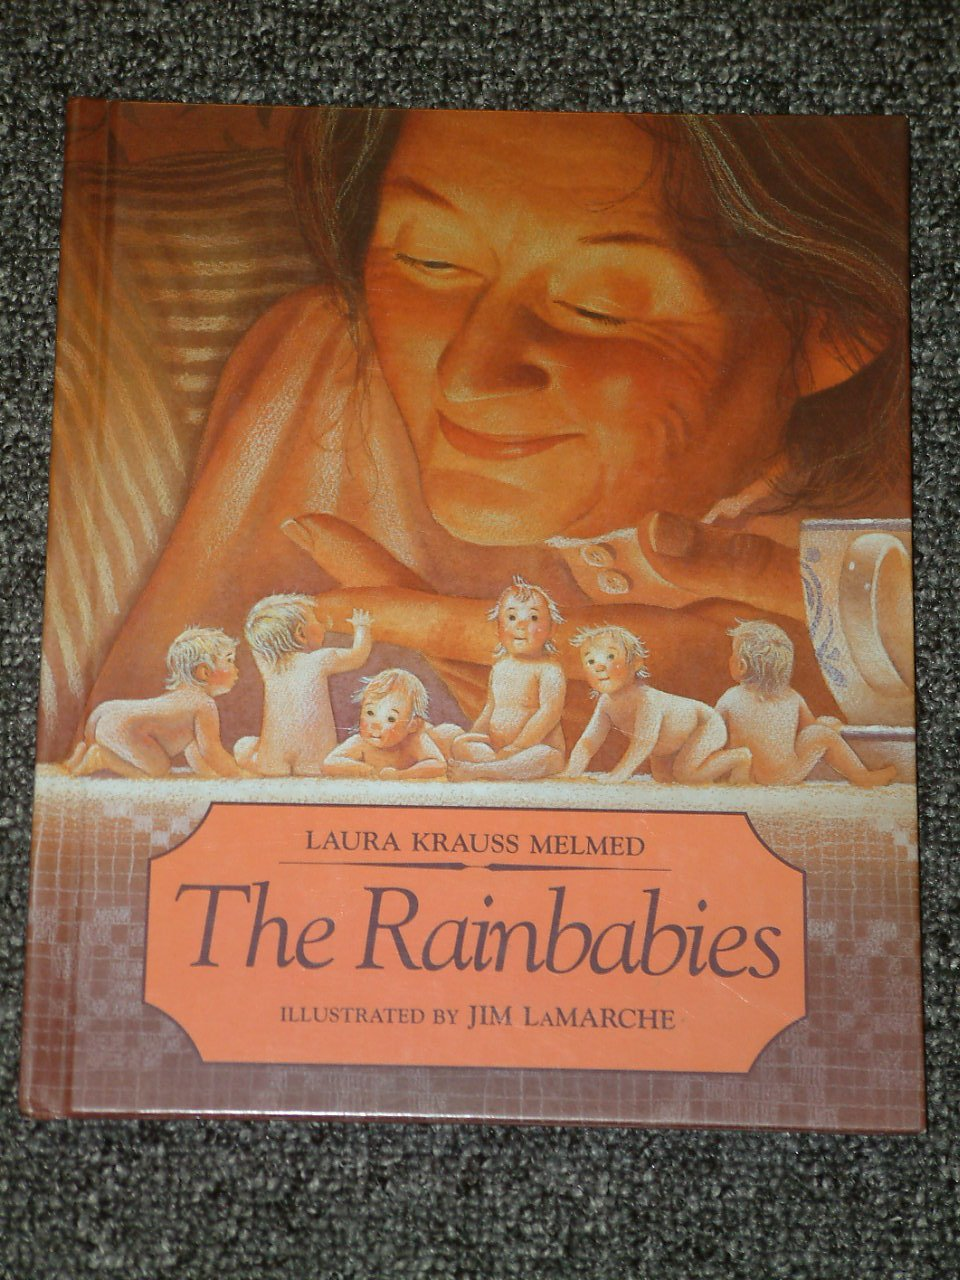 The Rainbabies by Laura Krauss Melmed and Jim LaMarche